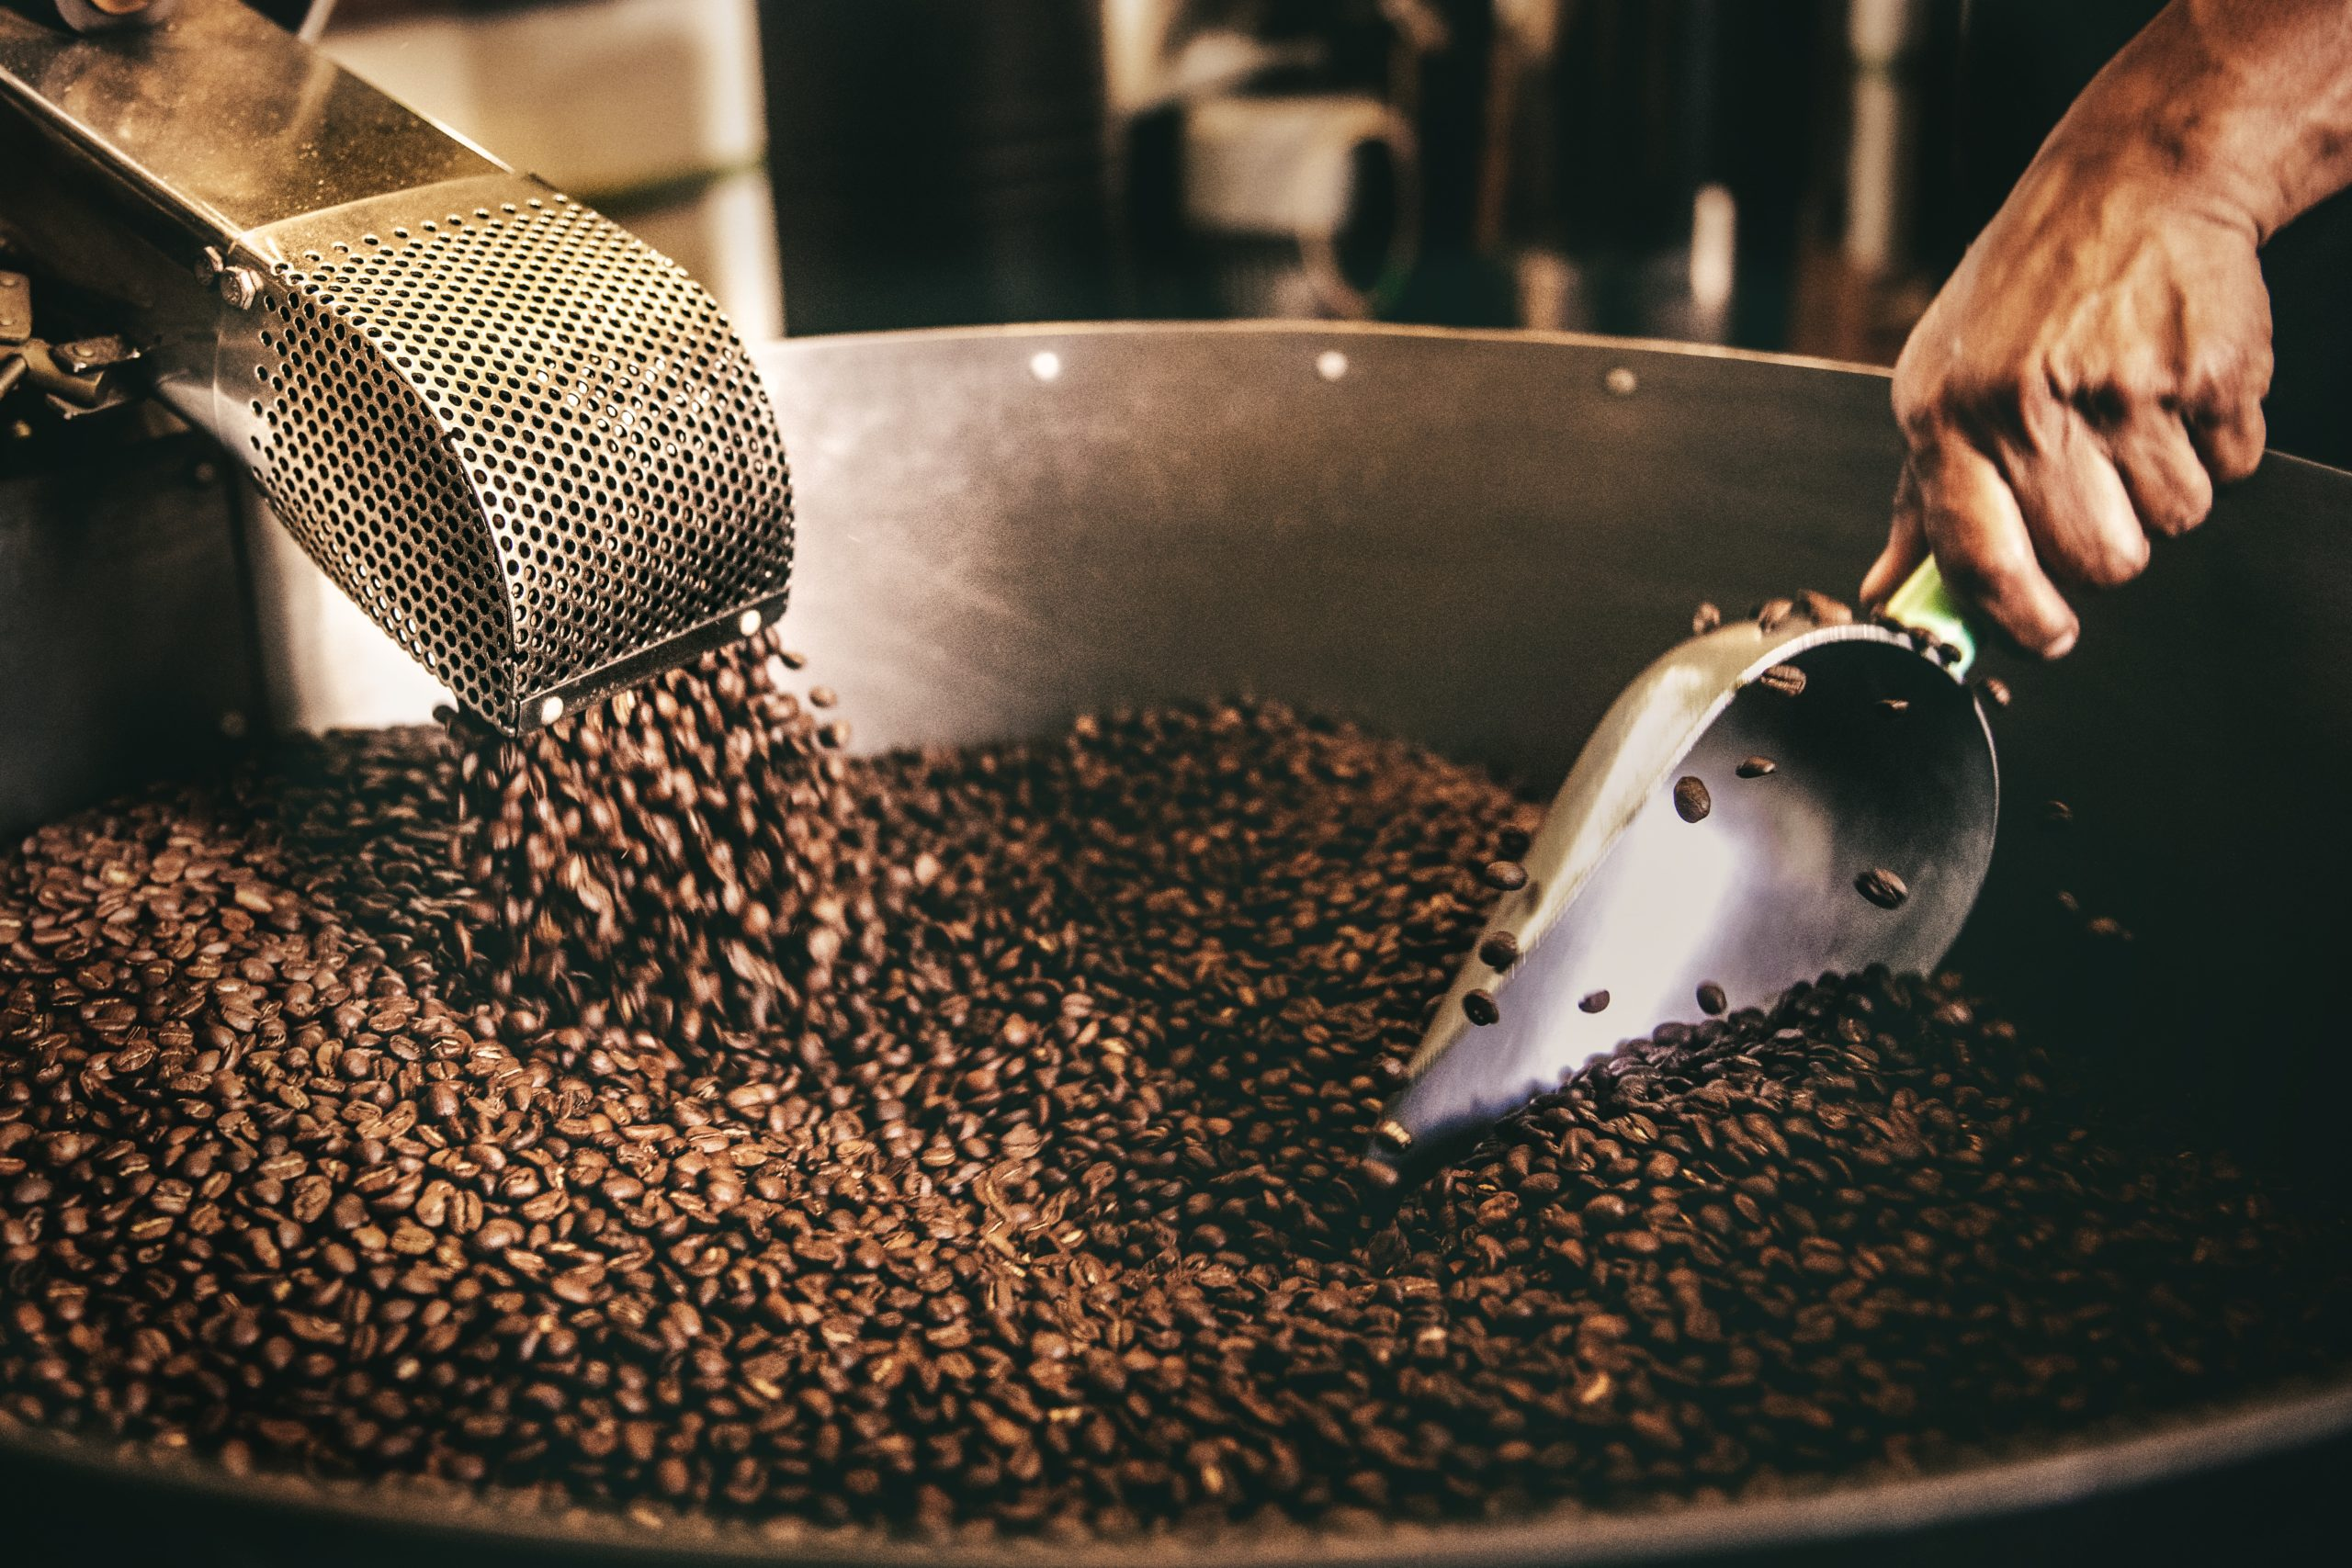 a coffee roaster scooping roasted coffee beans from the roasting machine